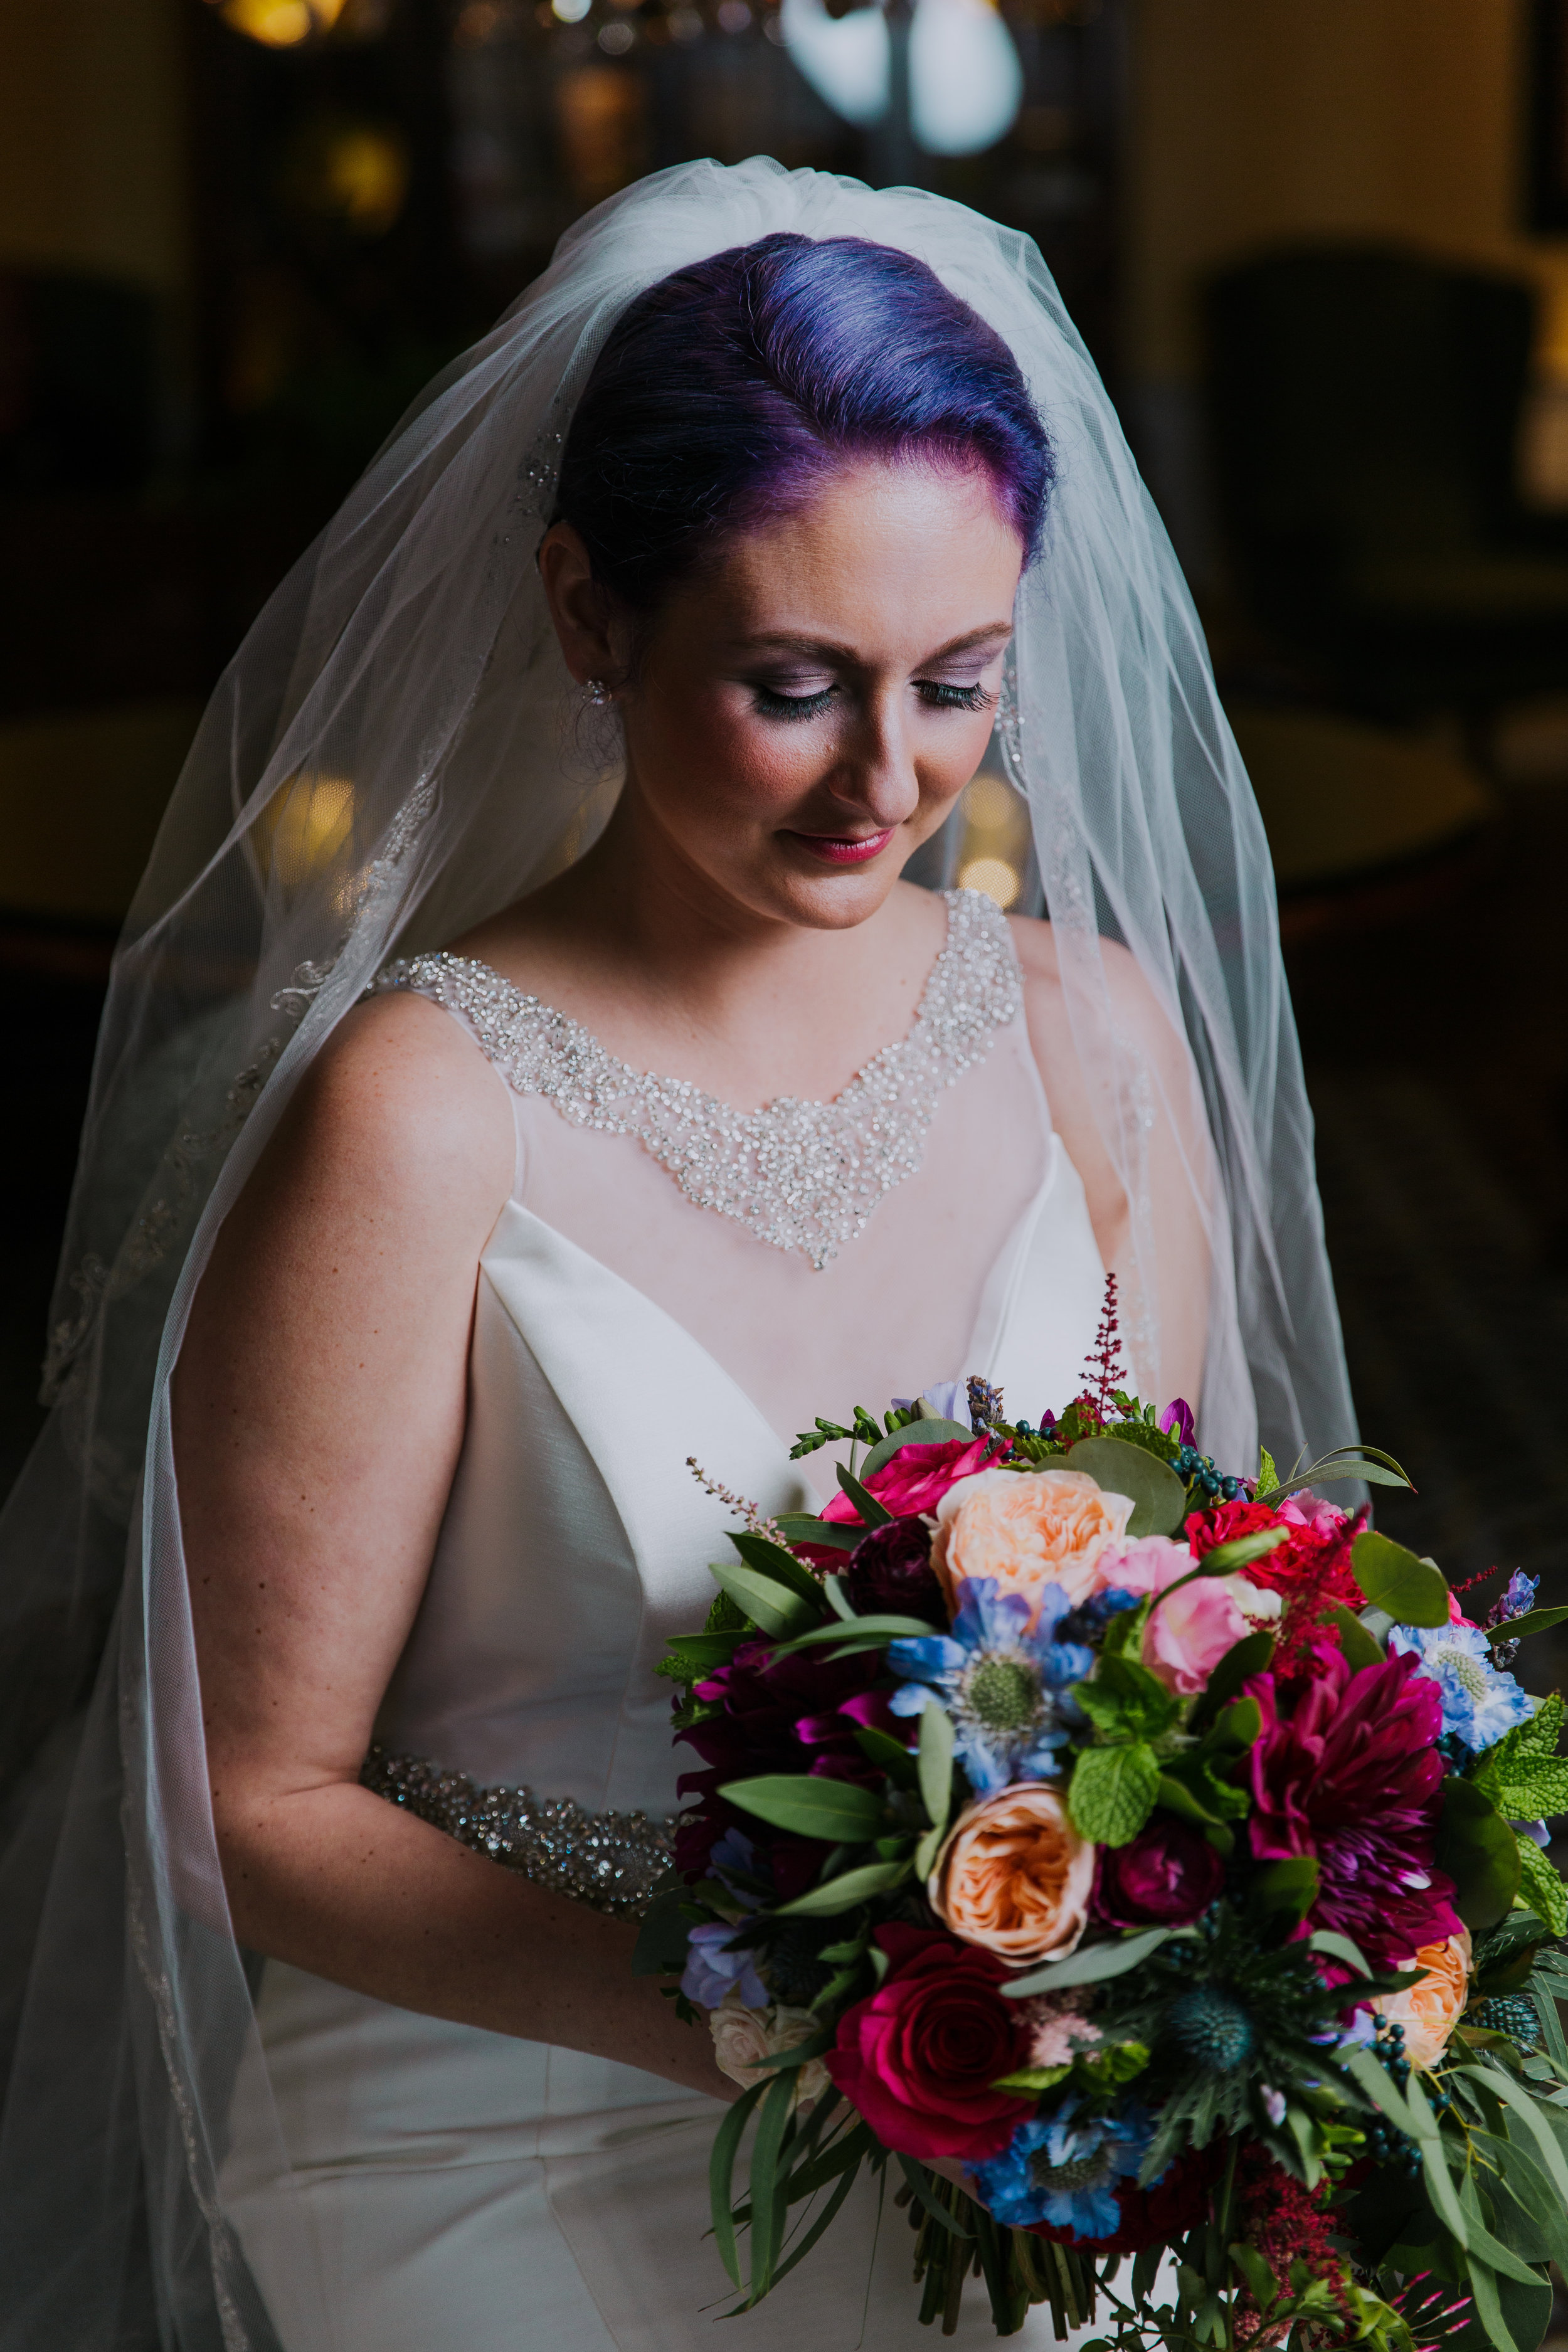 AmandaJoe_Wedding_Portraits-7.jpg